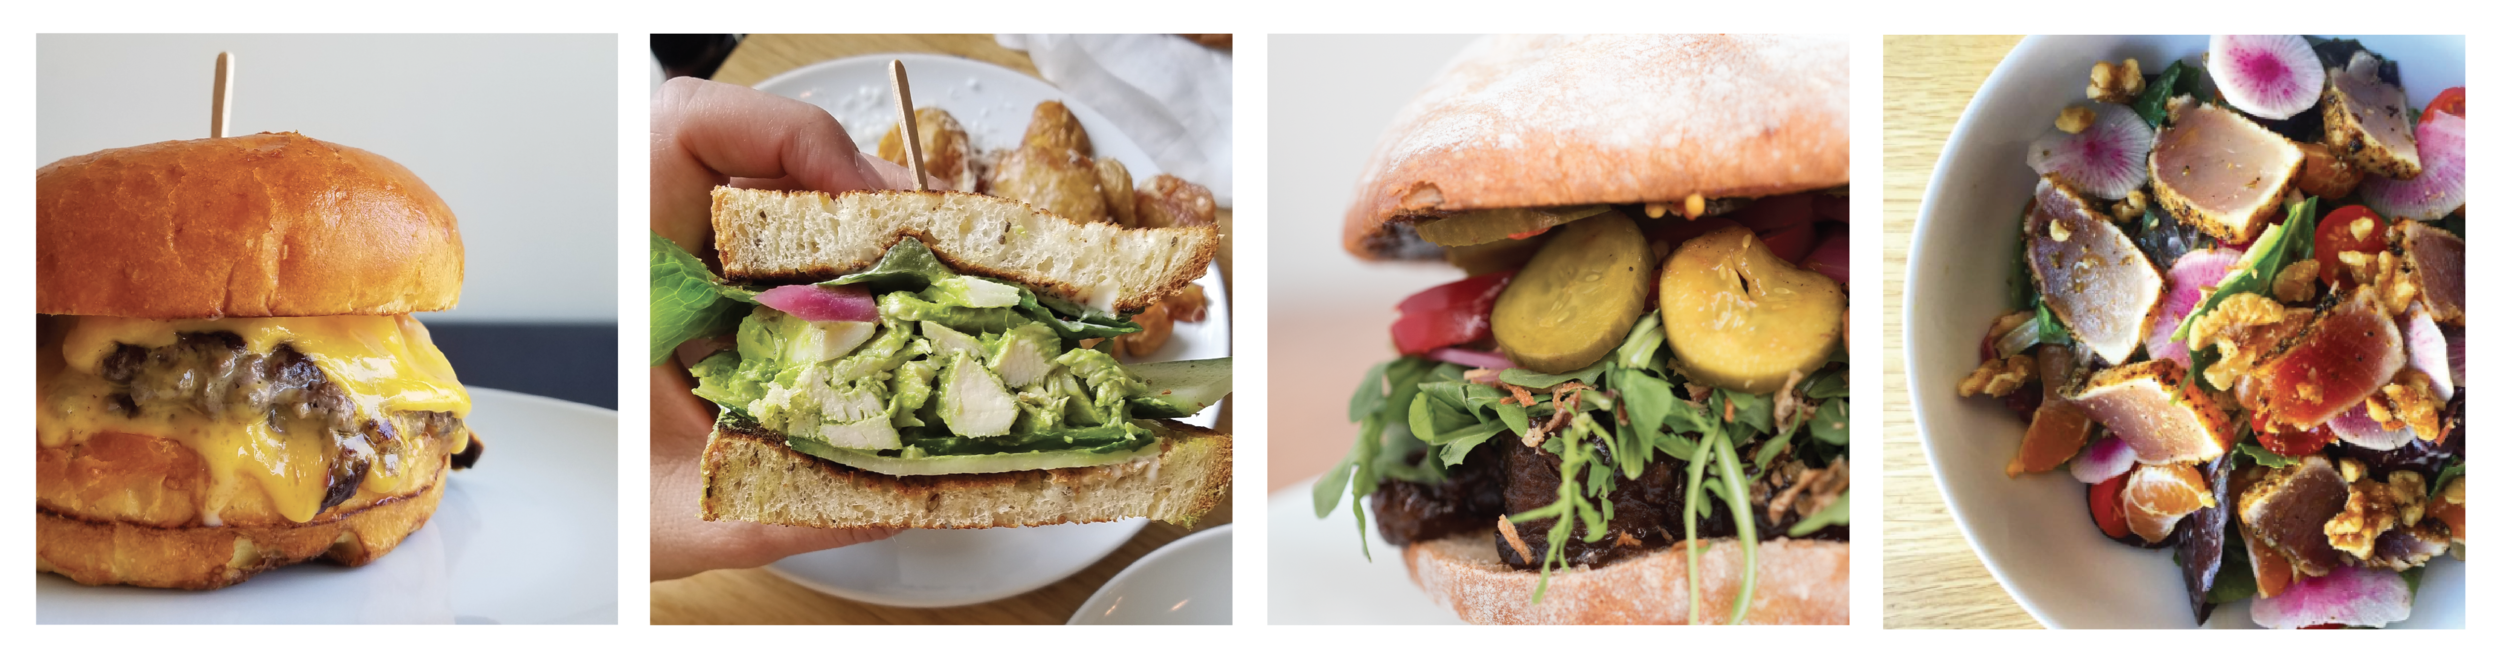 cheese buerger, green goddess chicken sandwich, BBQ brisket sandwich, seared albacore salad